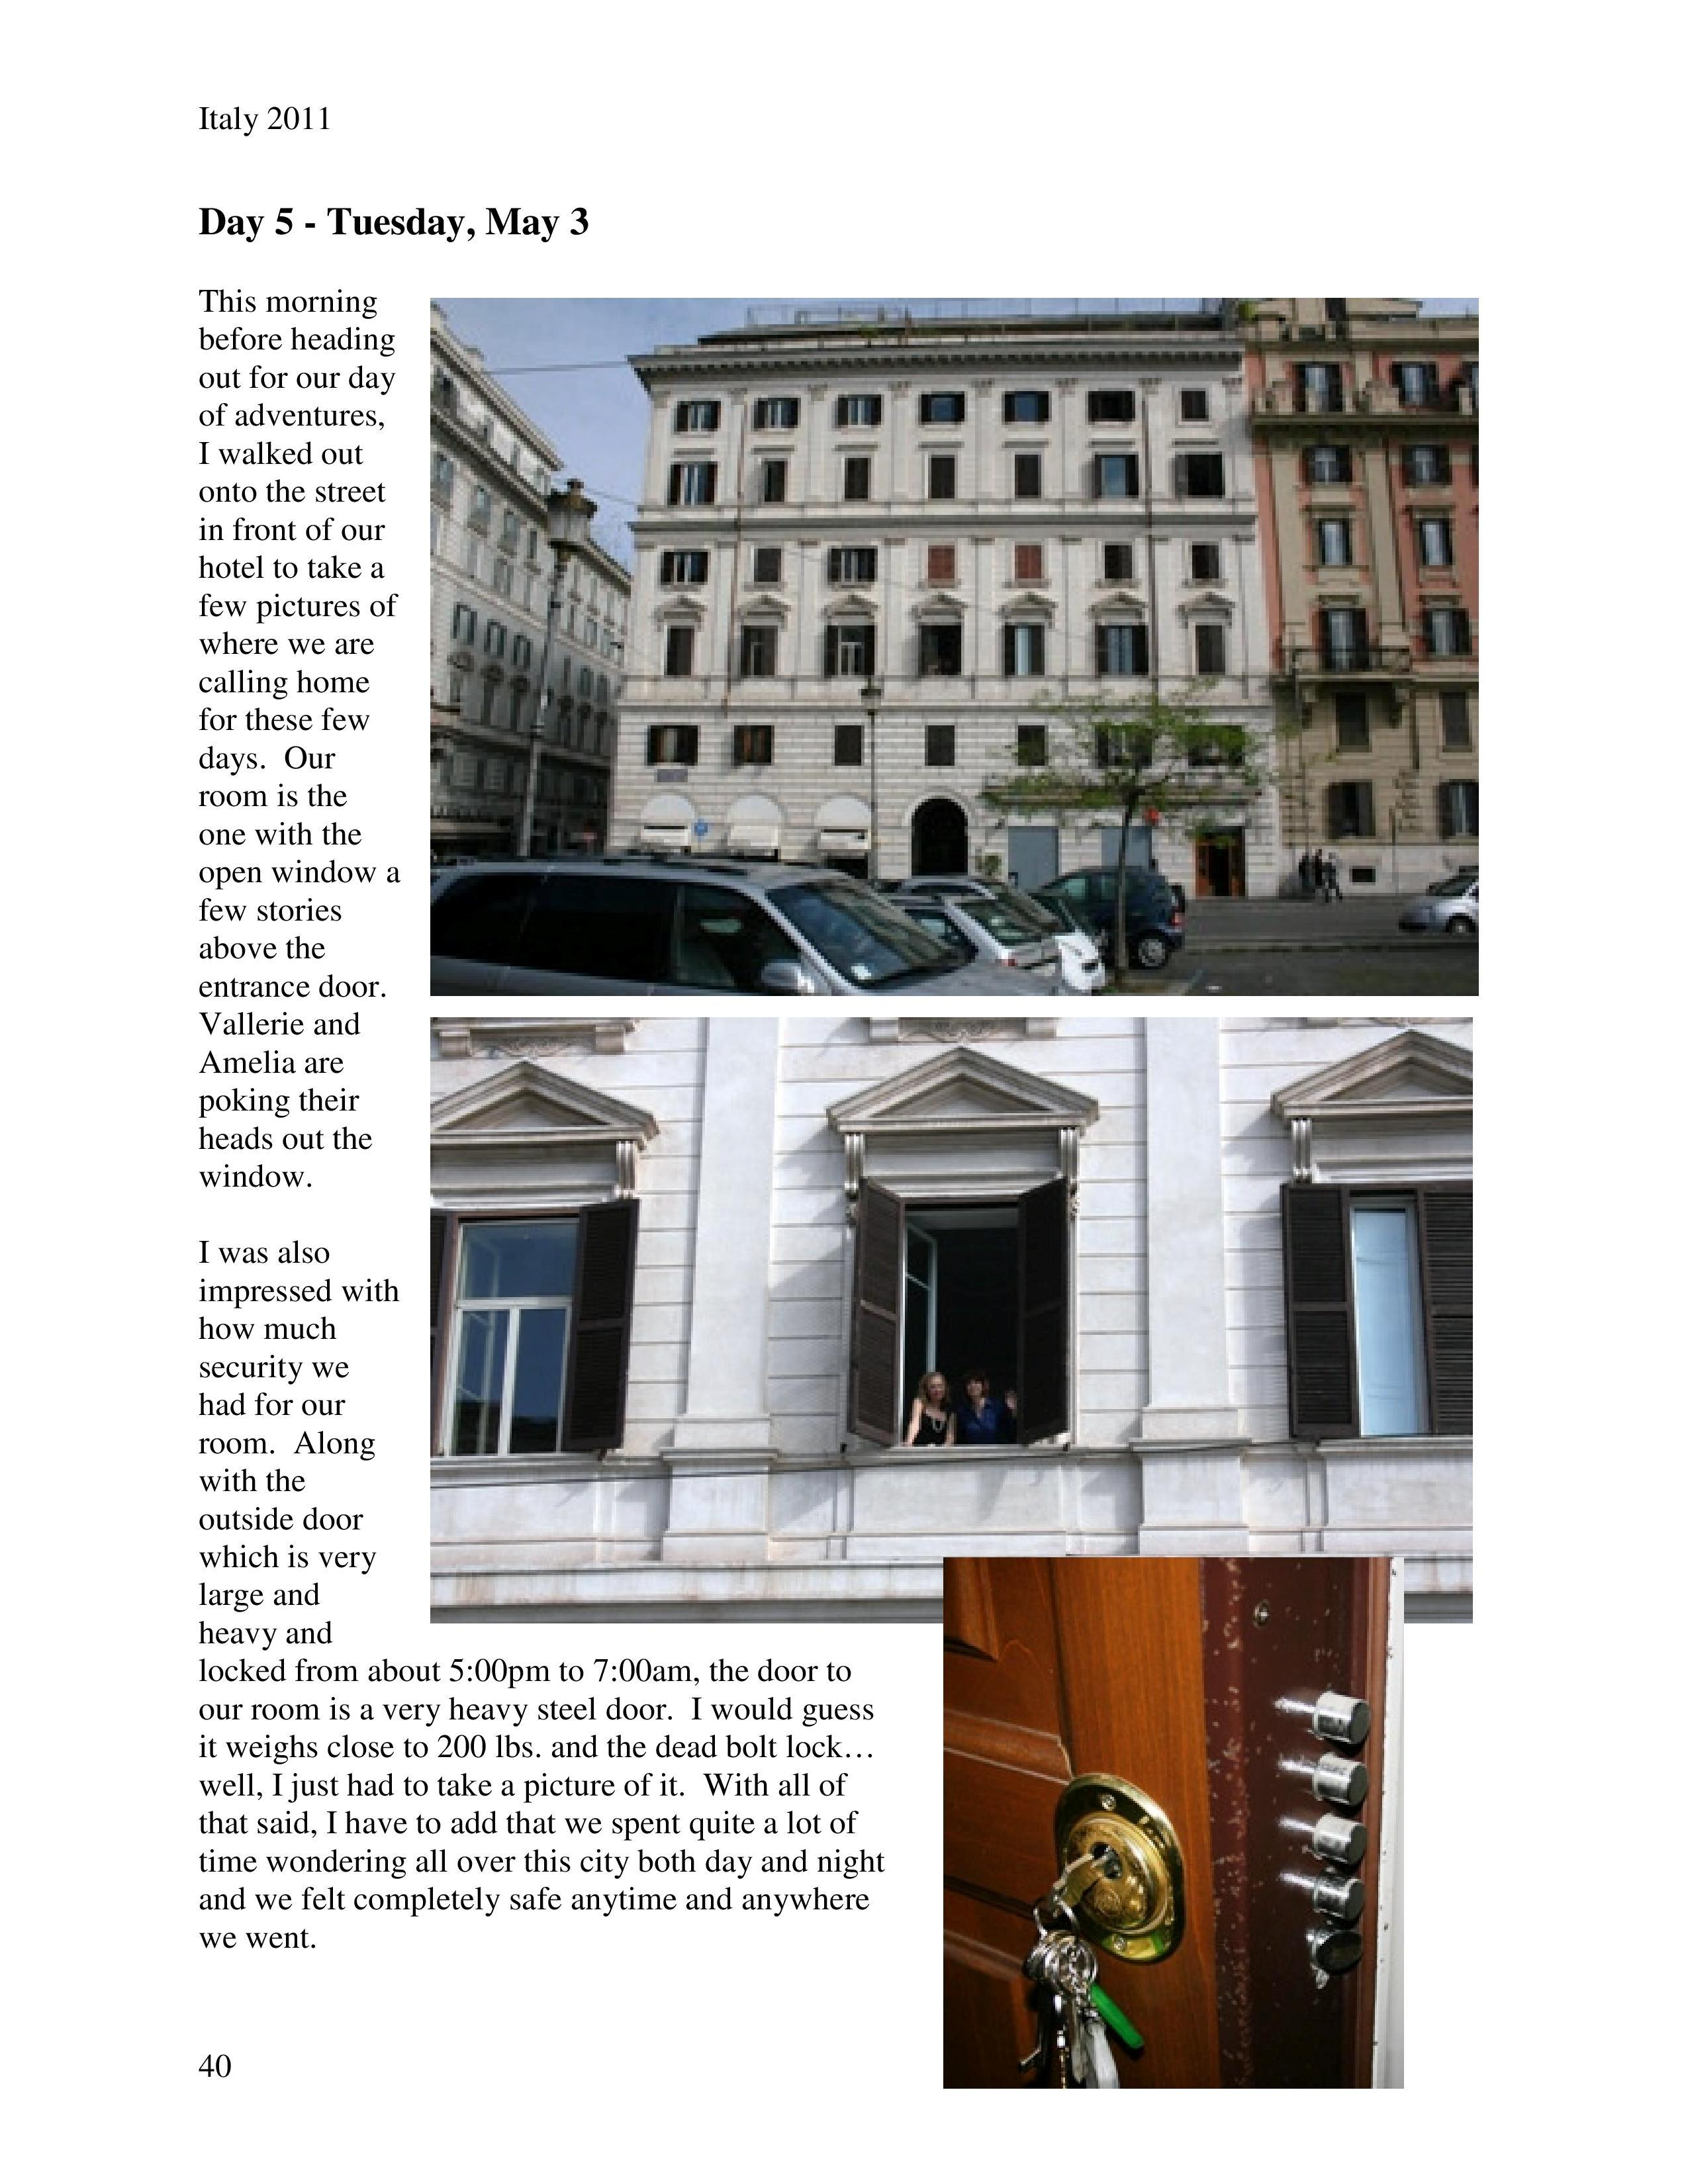 Italy 2011 May 3 - Day 5-page-001